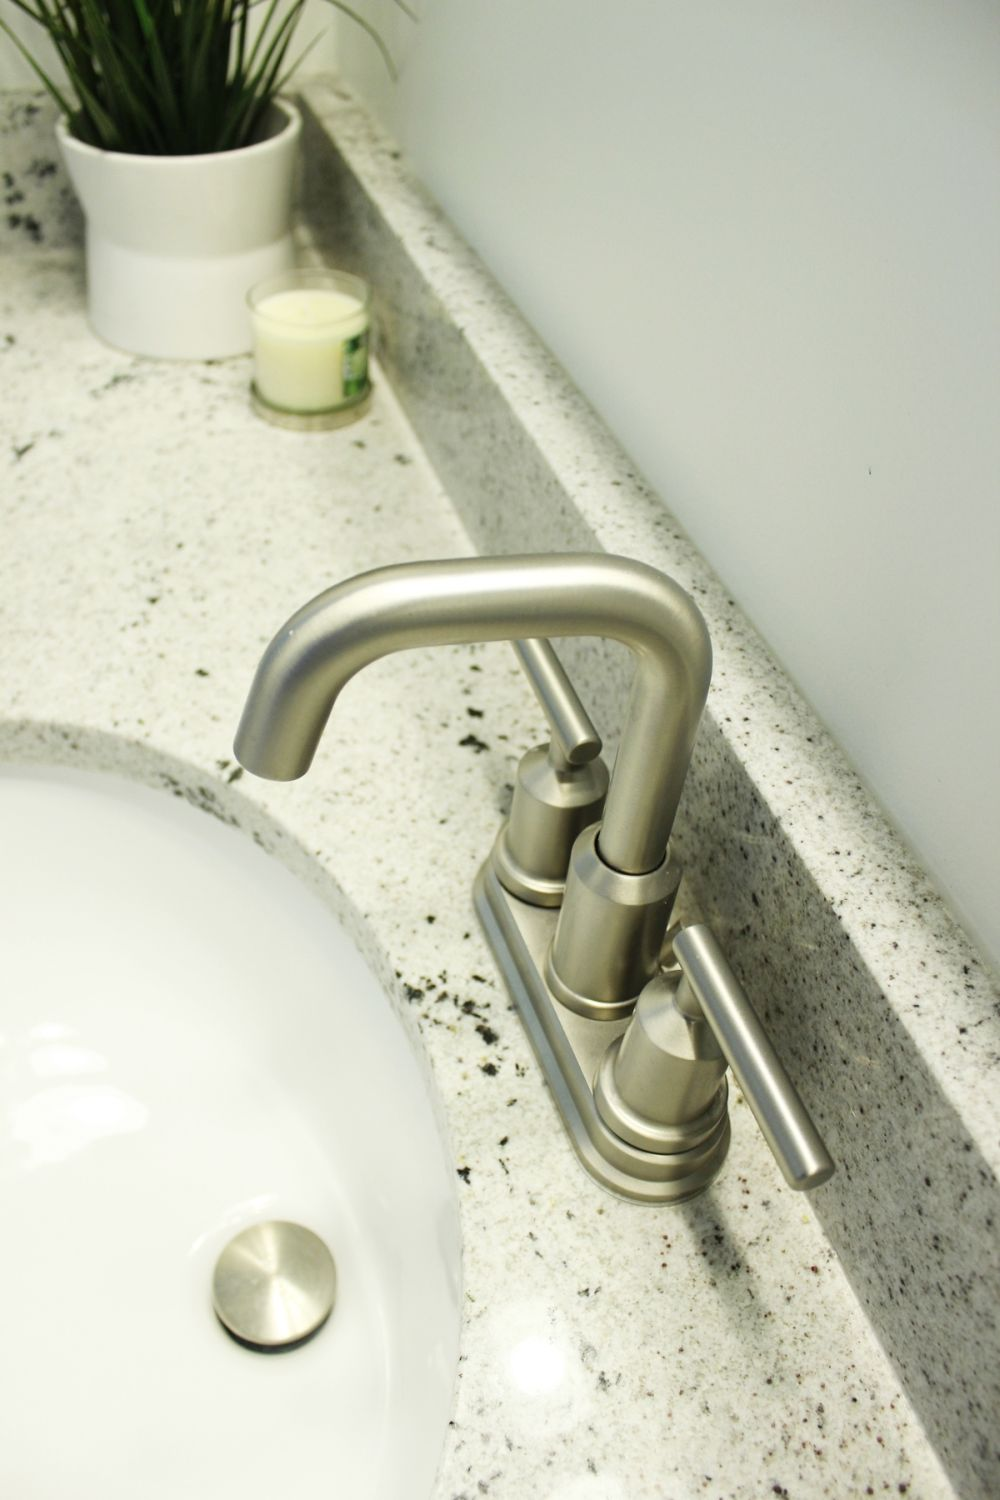 Choosing the right faucet for the bathroom sink